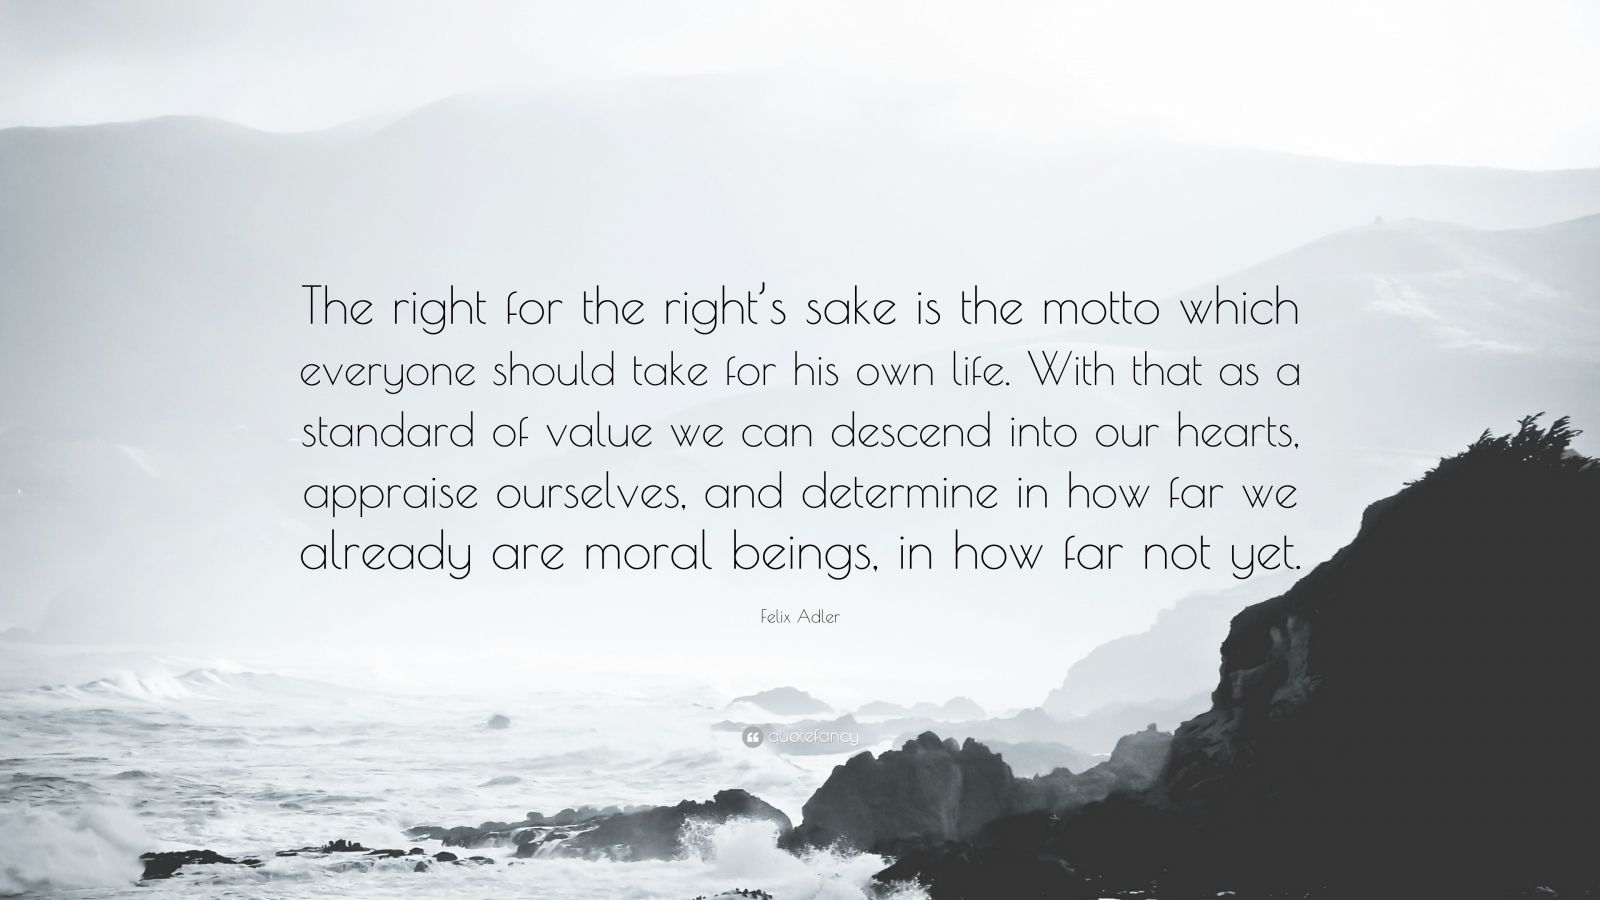 """Felix Adler Quote: """"The right for the right's sake is the motto which everyone should take for his own life. With that as a standard of value we can descend into our hearts, appraise ourselves, and determine in how far we already are moral beings, in how far not yet."""""""